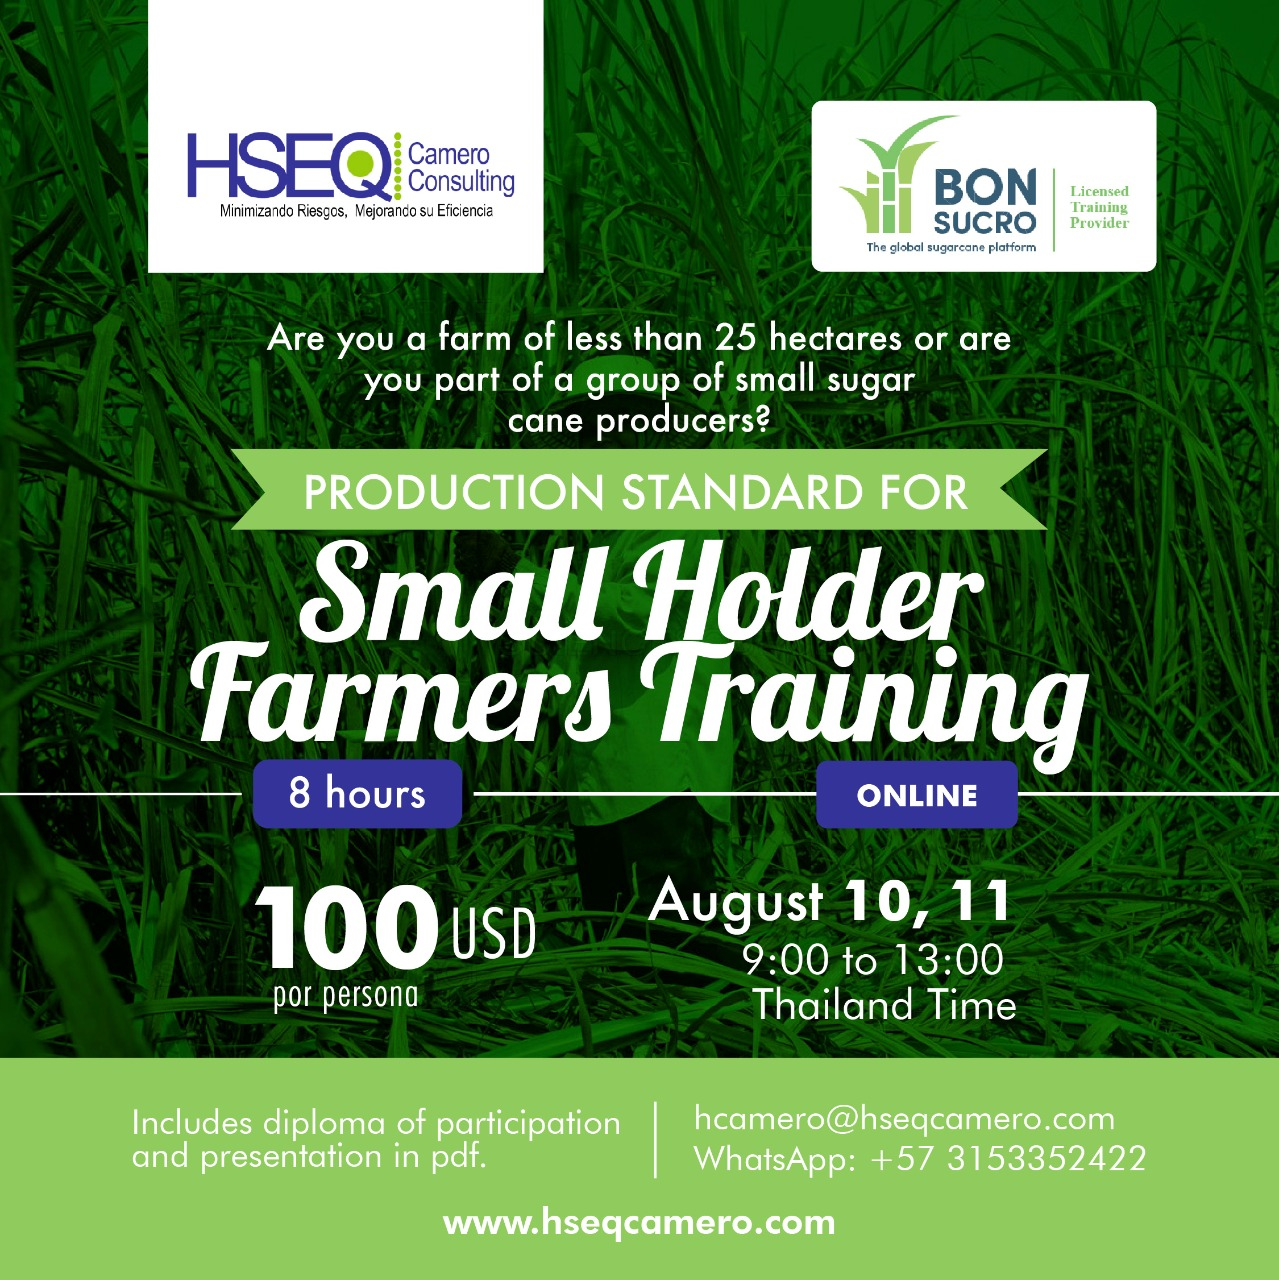 Production standar for small holder farmers training – August 10, 11